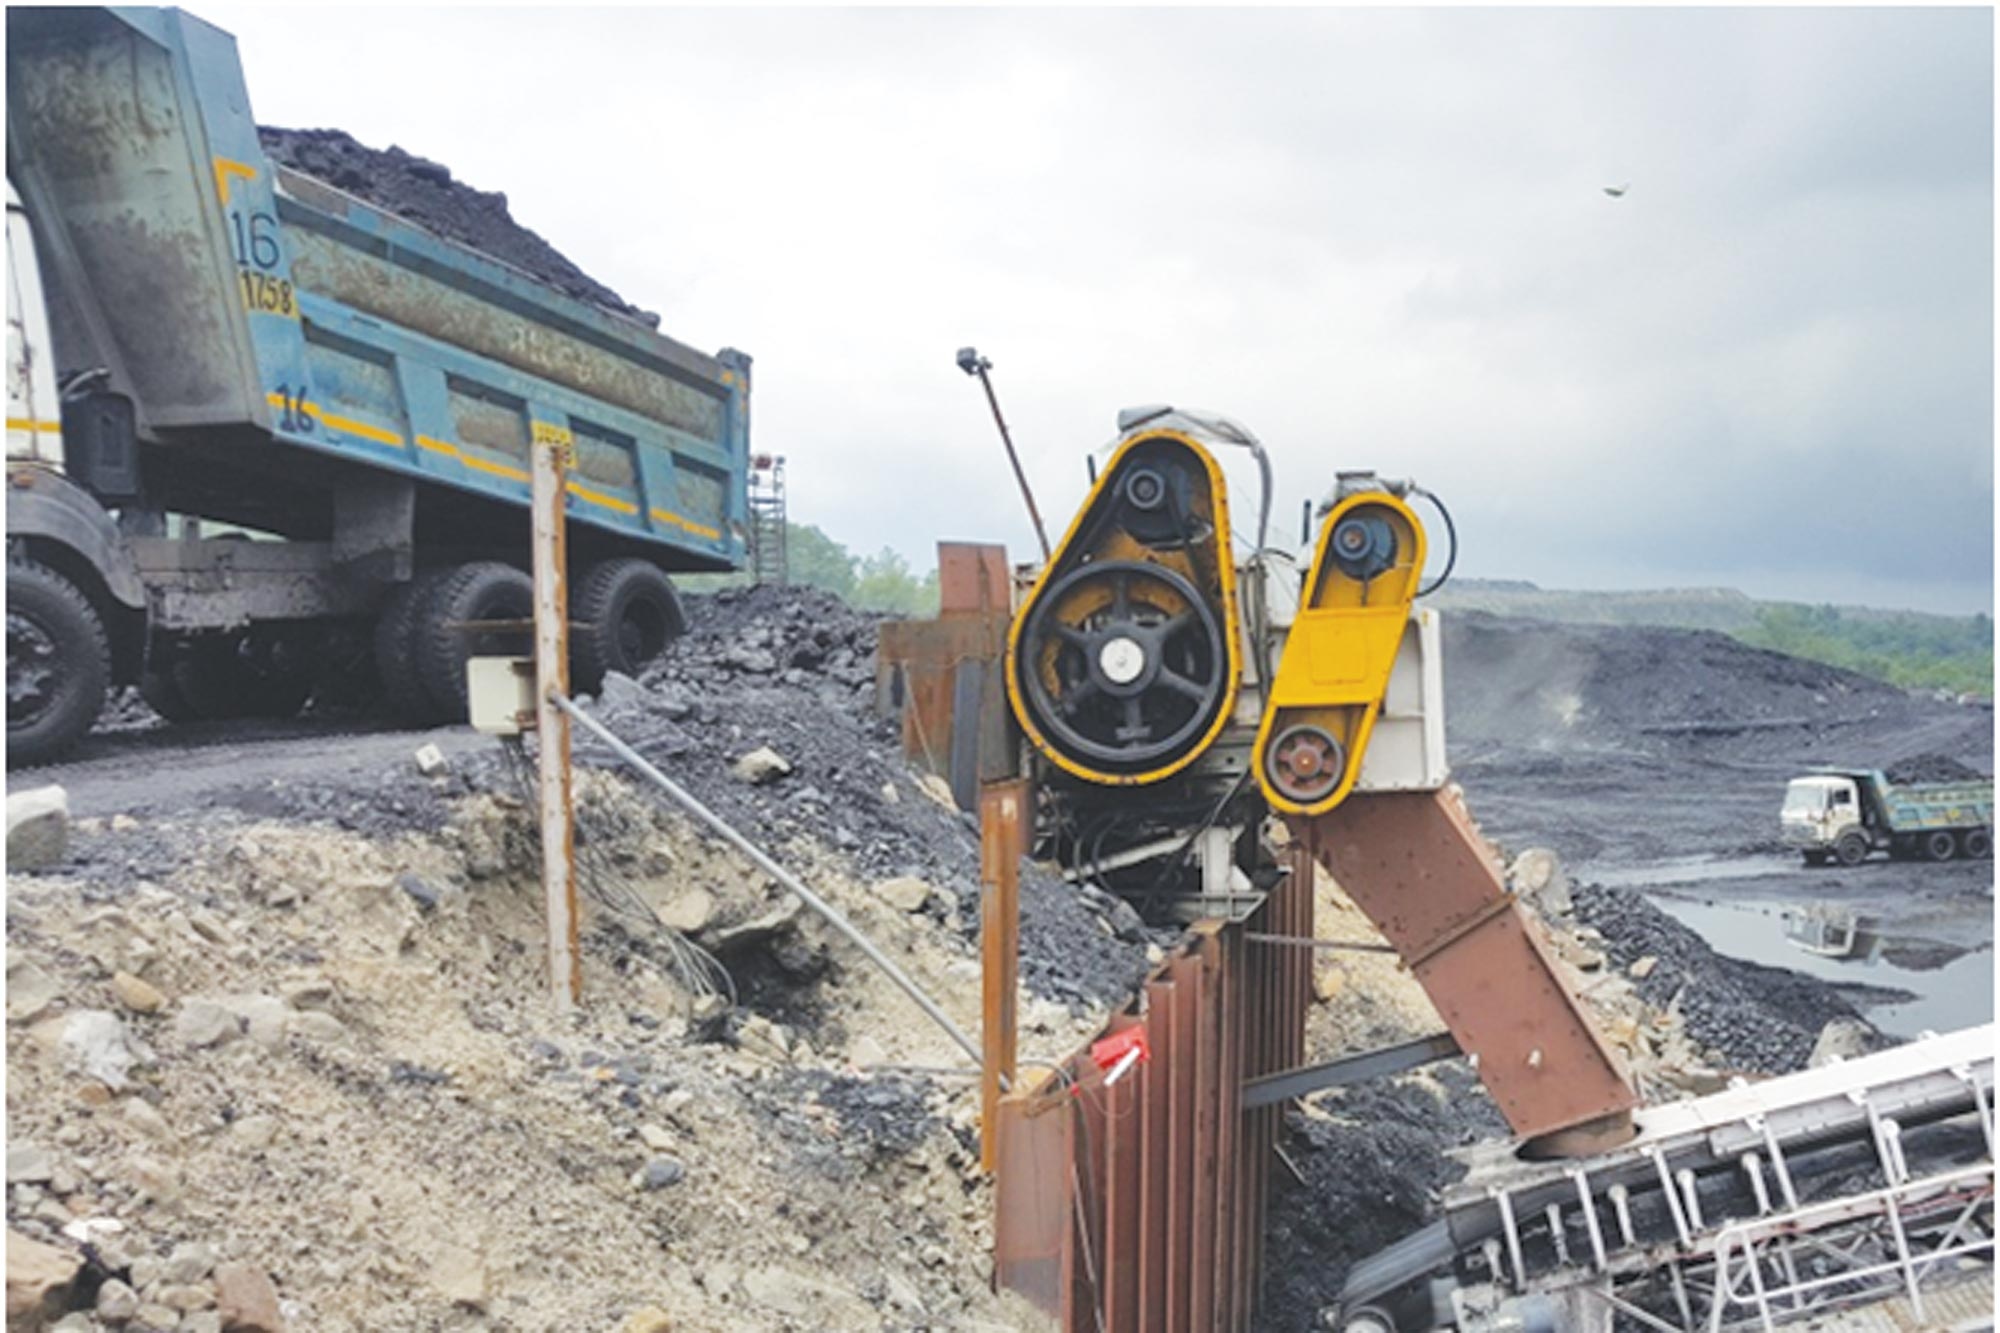 How to achieve cost-effectivecrushing & screening